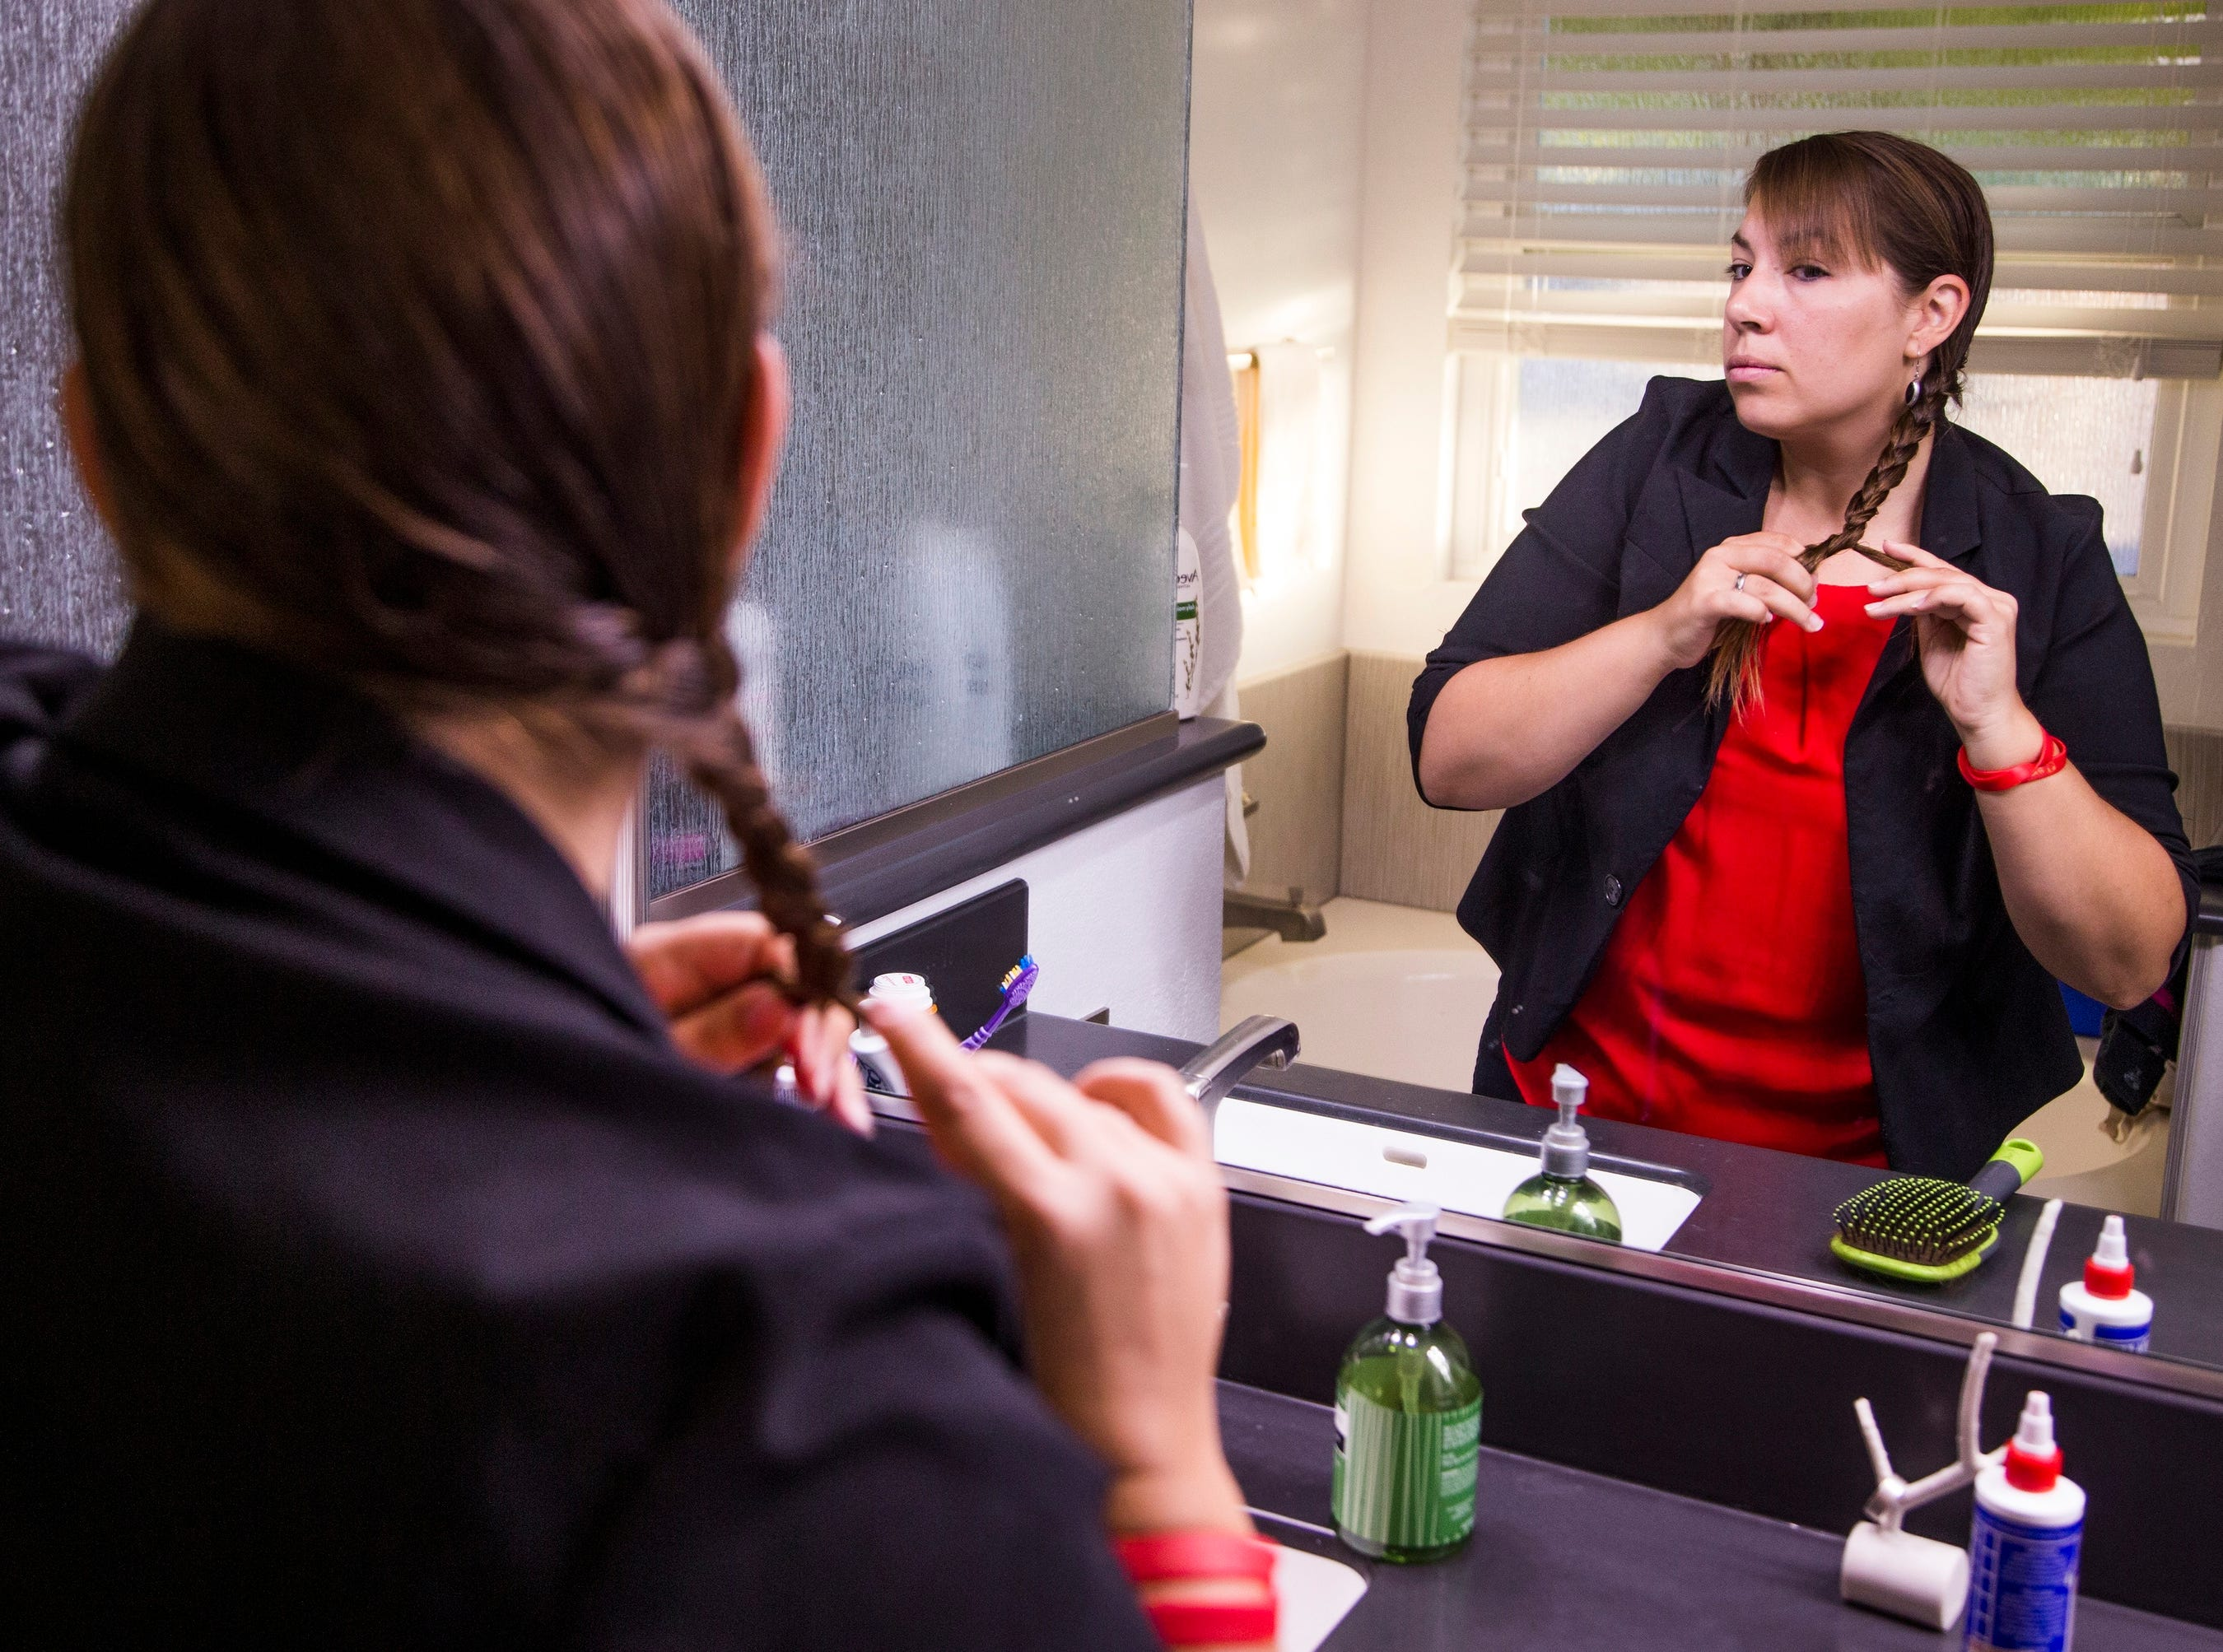 Phoenix, AZ – Rebecca Garelli brushes her hair at 6:41 am before heading out for her 30-mile commute to Sevilla West Elementary School in Phoenix, Arizona, Monday, September 17, 2018. Garelli has been one of the leaders of the Red for Ed movement, demanding increased funding for education in Arizona.